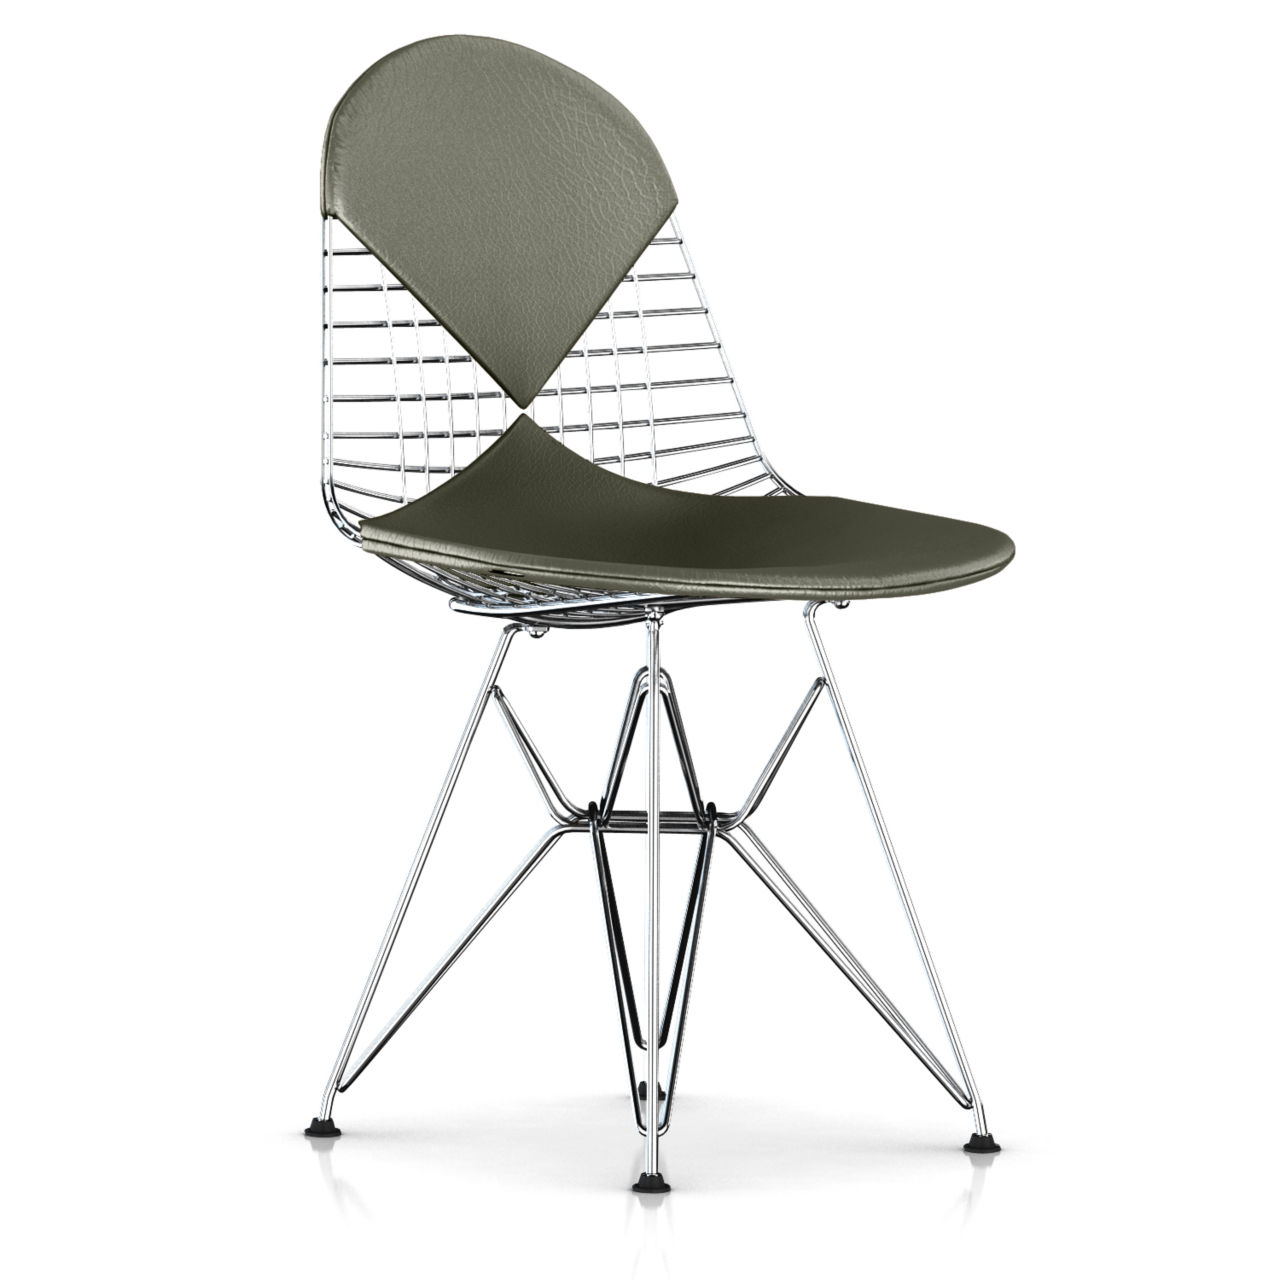 Eames Bikini Wire Chair in Sage Open Line Leather by Herman Miller